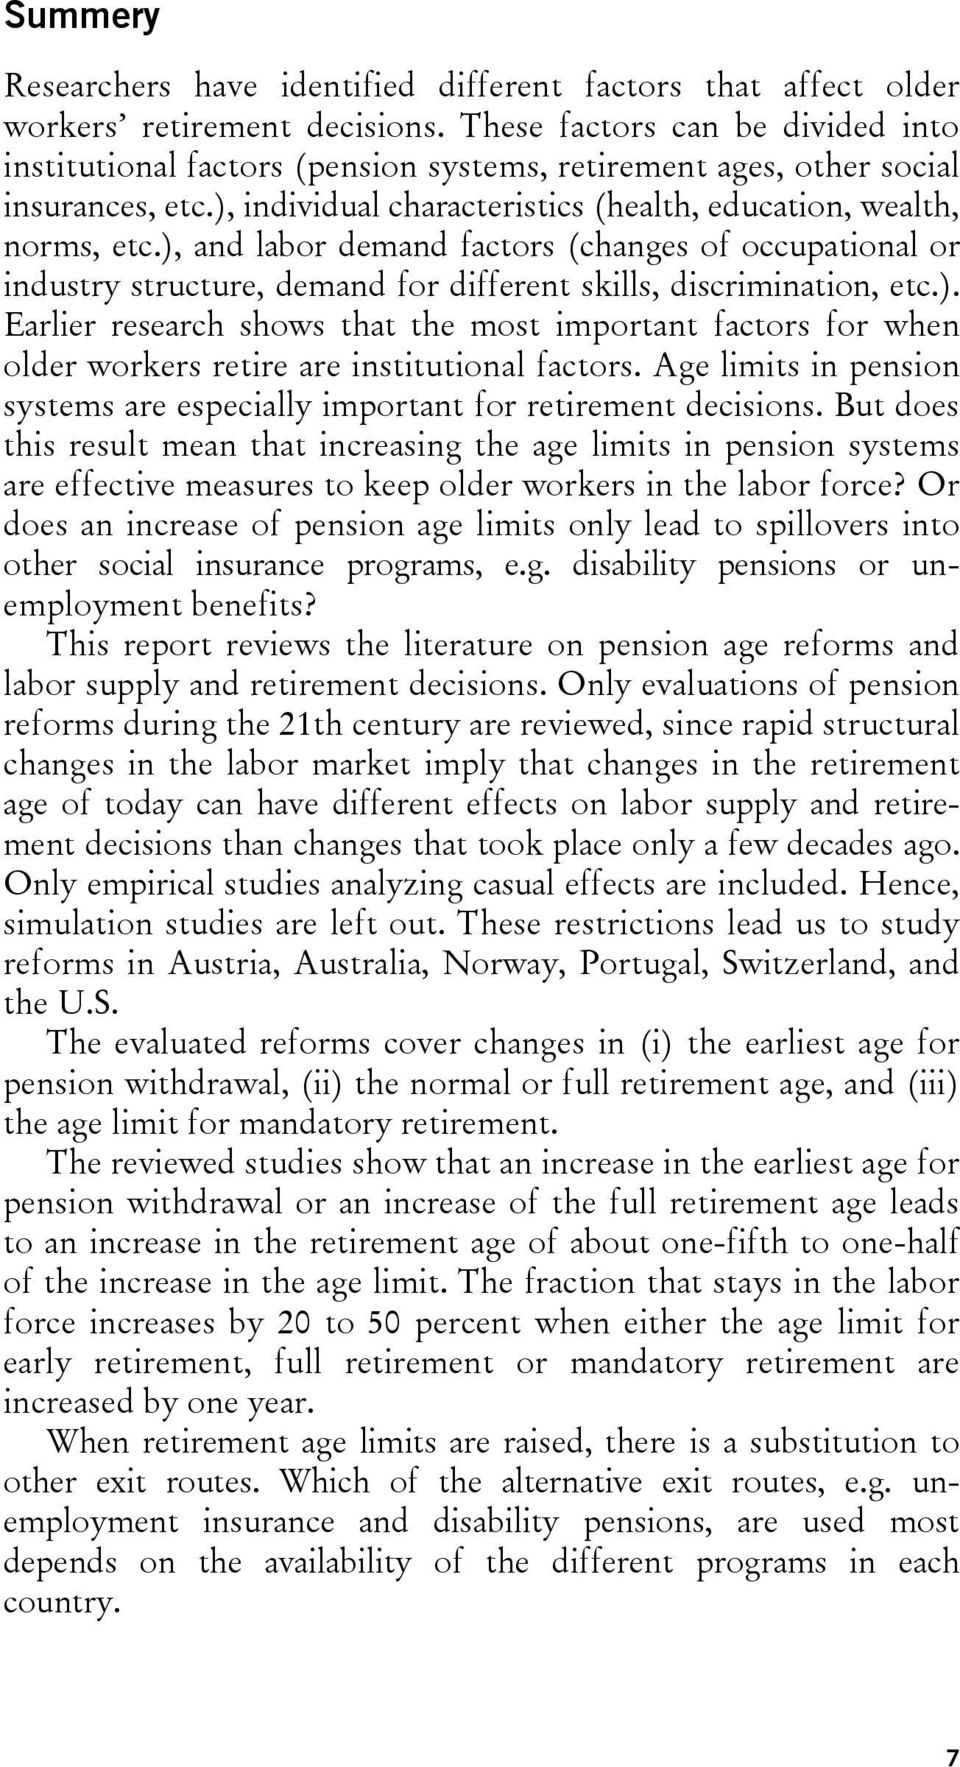 ), and labor demand factors (changes of occupational or industry structure, demand for different skills, discrimination, etc.). Earlier research shows that the most important factors for when older workers retire are institutional factors.